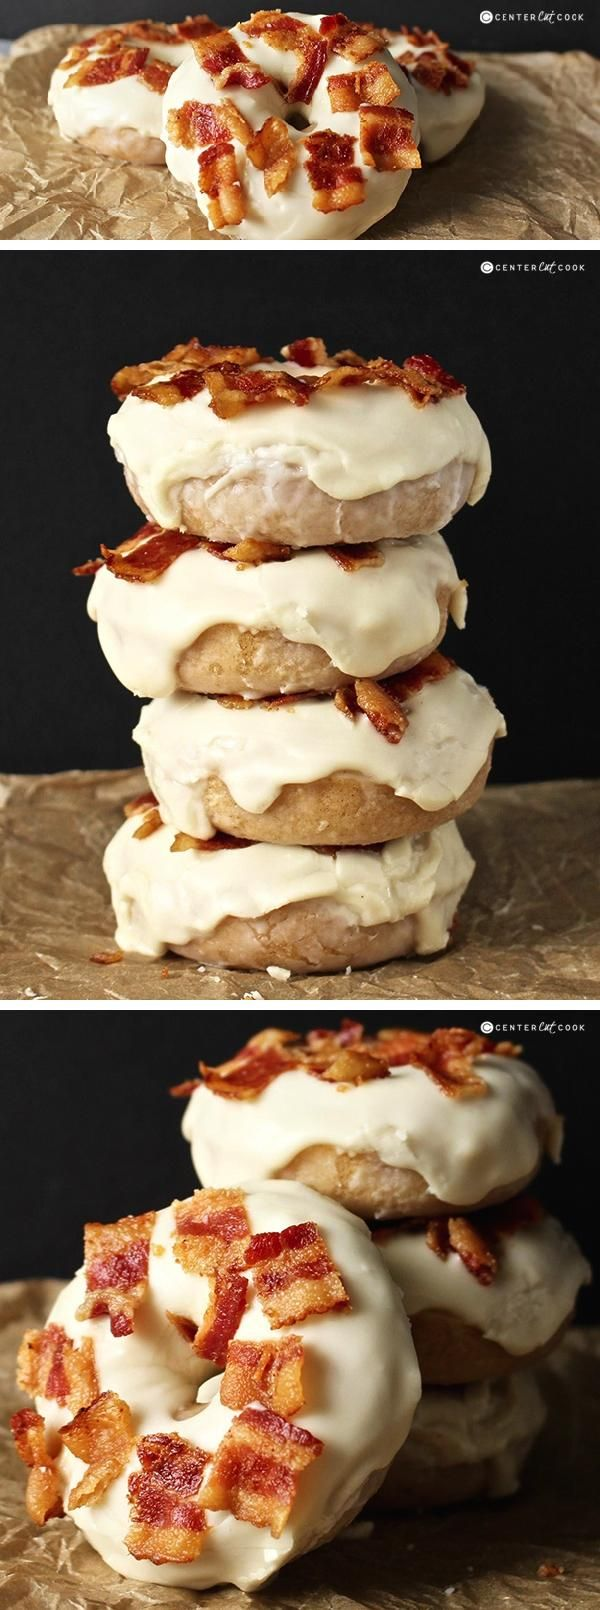 This Maple Bacon Donuts recipe is so easy and the perfect combination of sweet and salty. A delicious cake donut, sweet maple glaze, and salty bacon make these an irresistible treat!